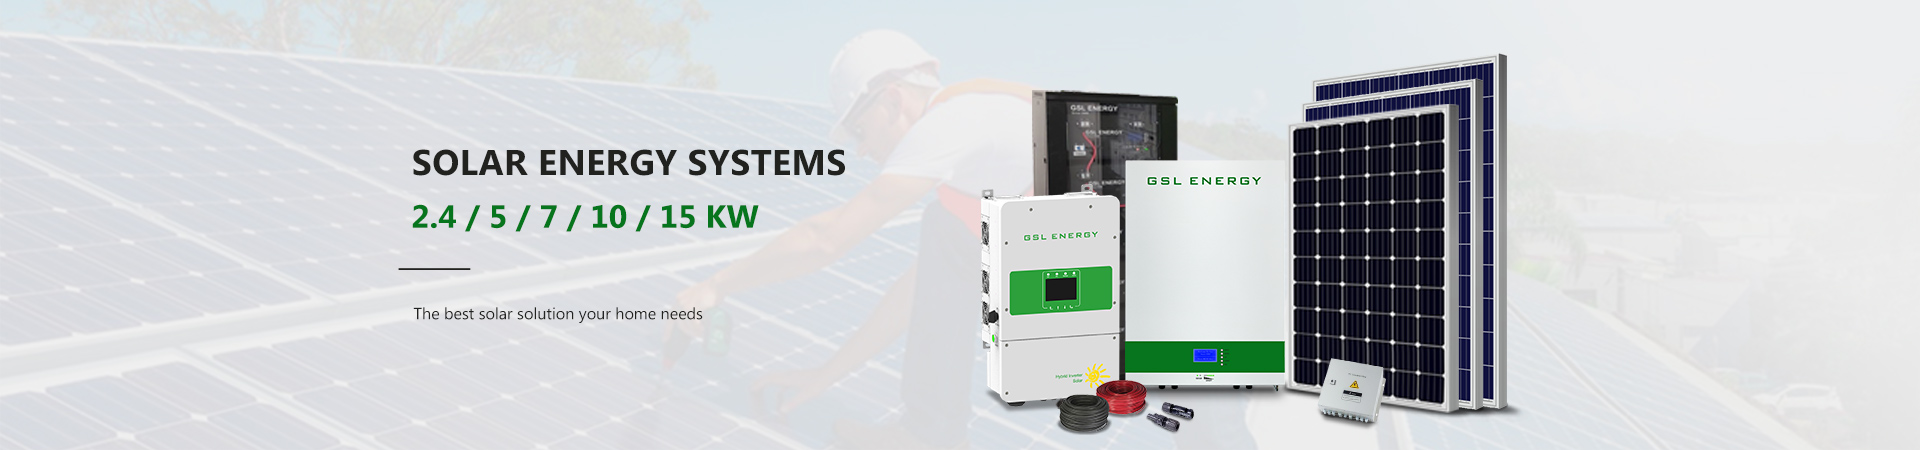 category-Best Smart Solar Energy Systems Manufacturer | Gsl Energy-GSL ENERGY-img-2